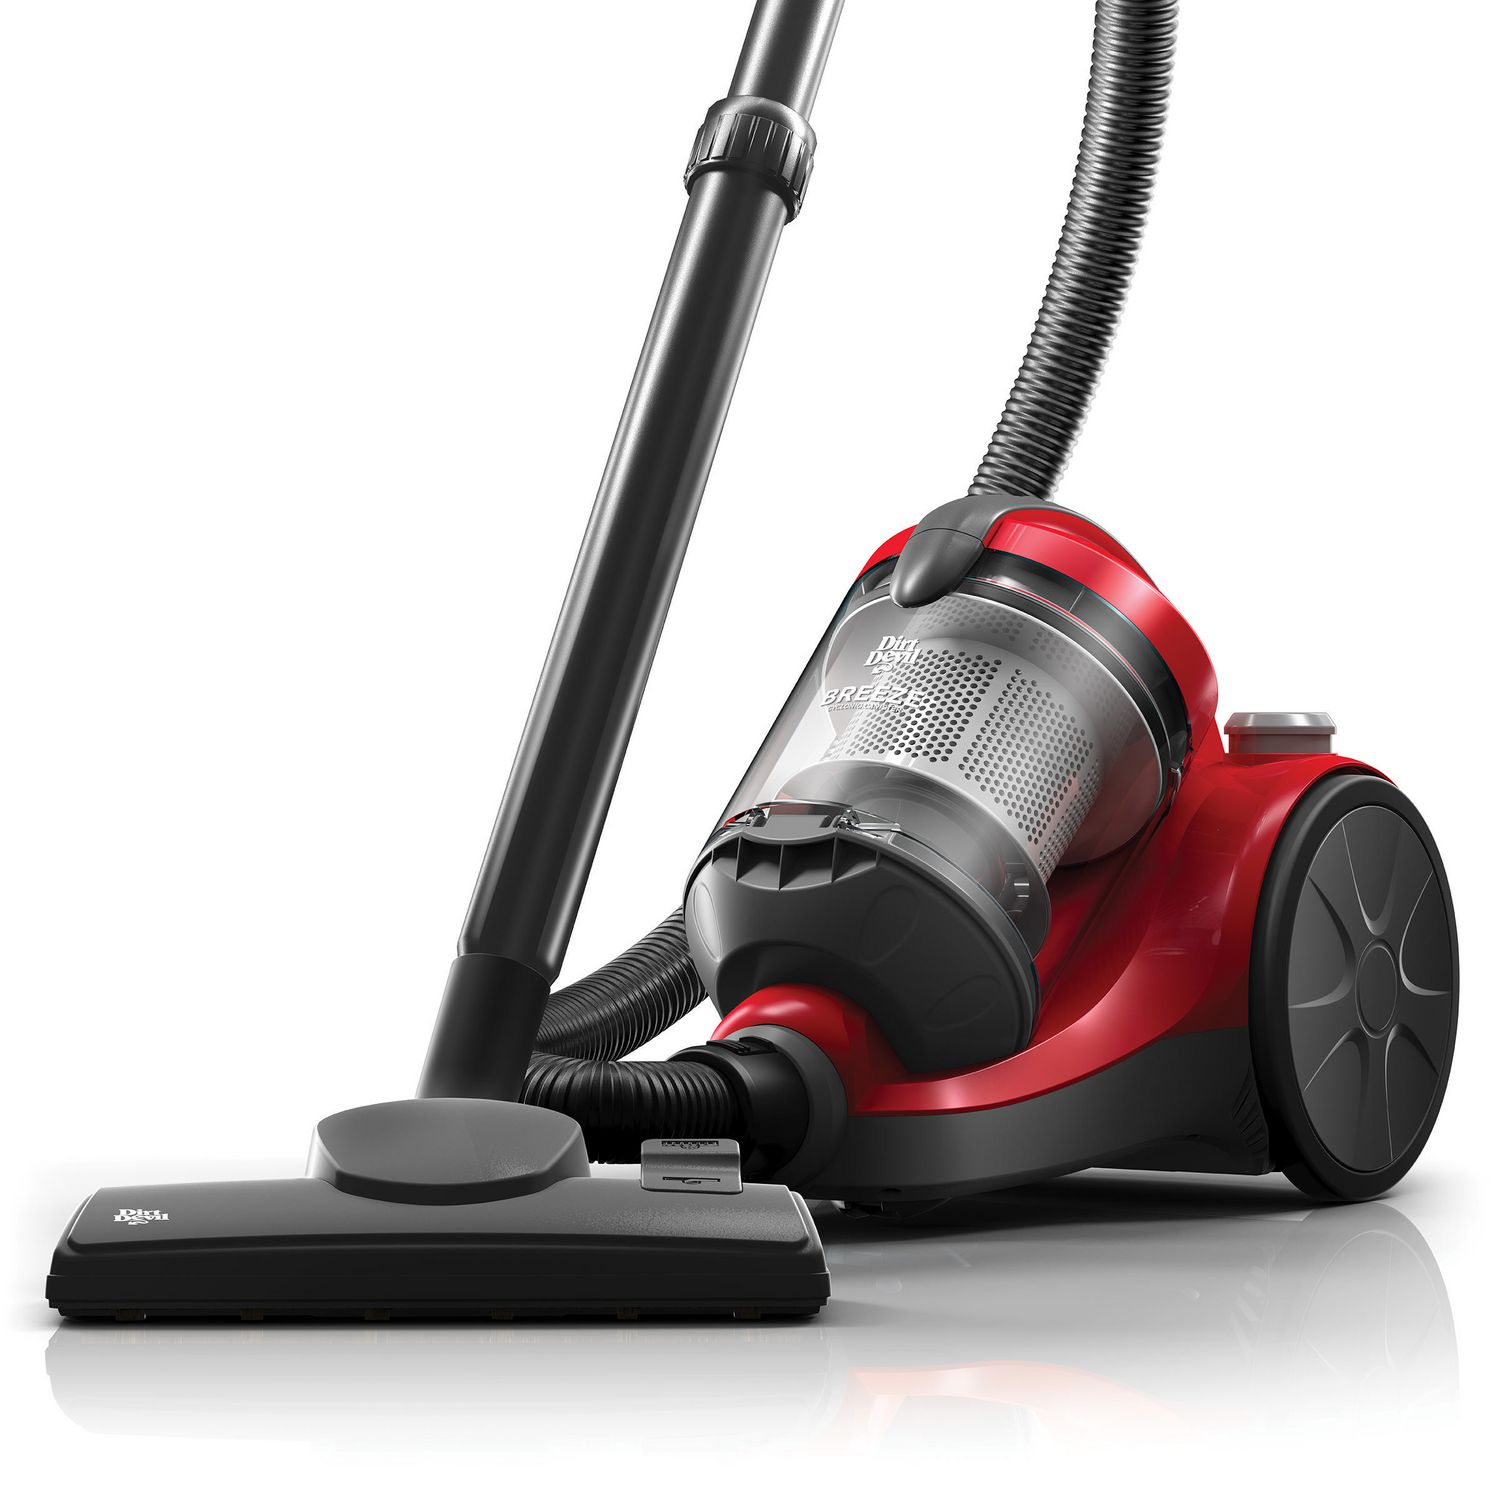 Image result for canister vacuum cleaner